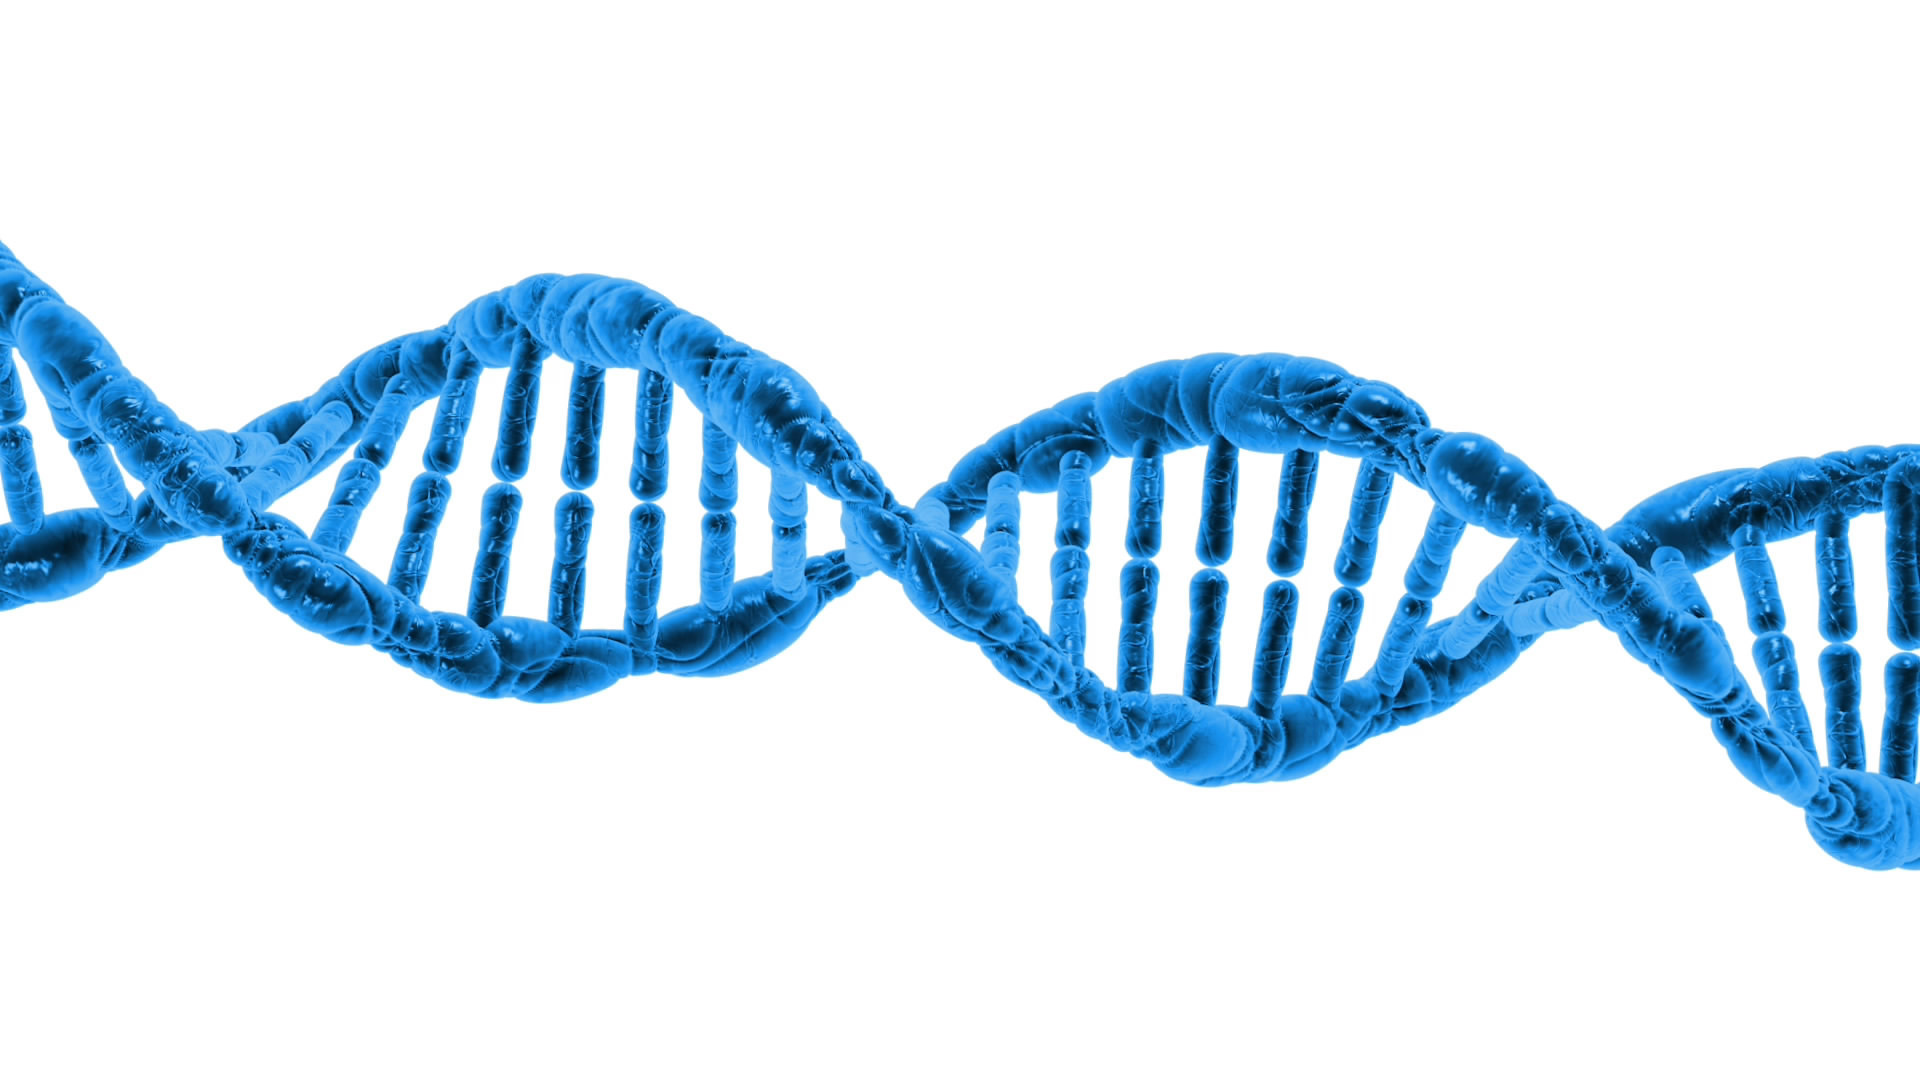 genetic dna desktop wallpaper 50090